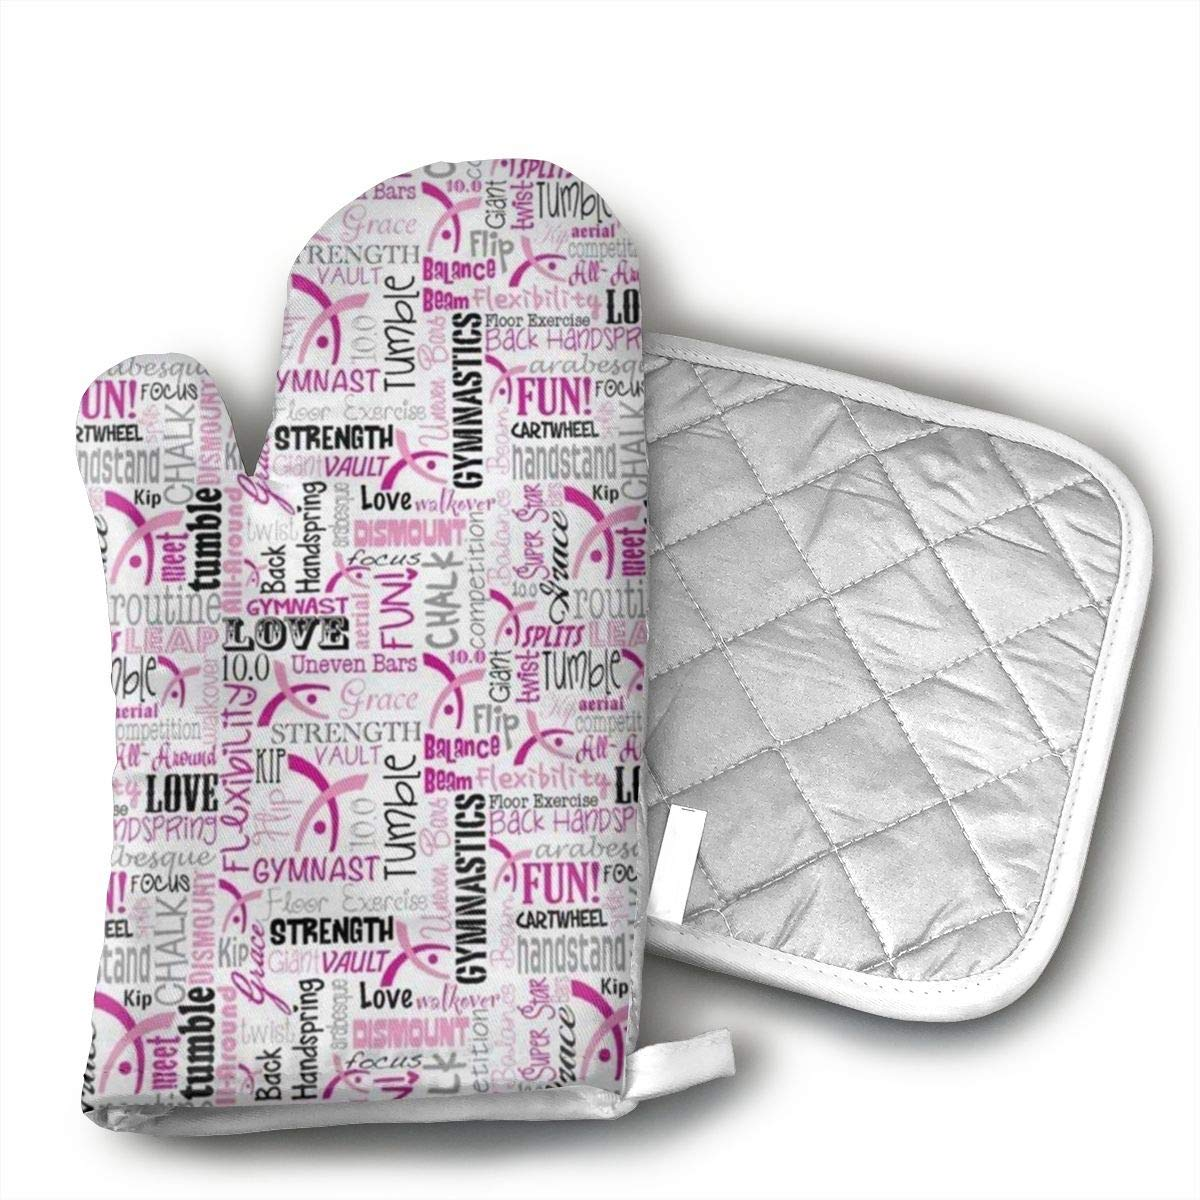 Amazon.com: BVAQGFGA12 Gymnastics Stylish Oven Mitts and ...